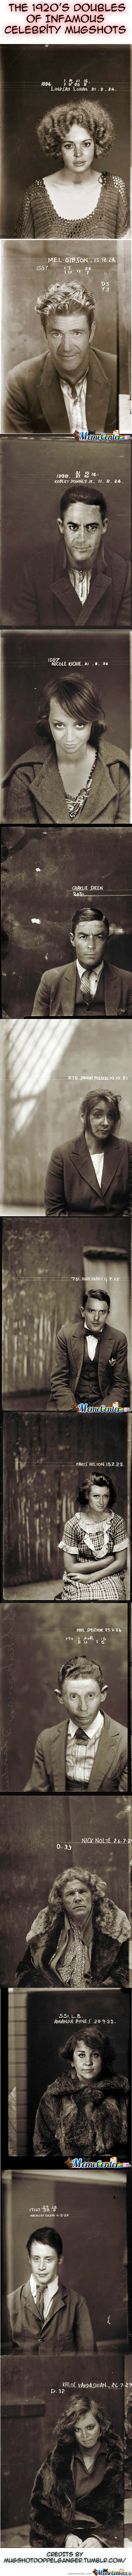 The 1920's Doubles Of Infamous Celebrity Mugshots